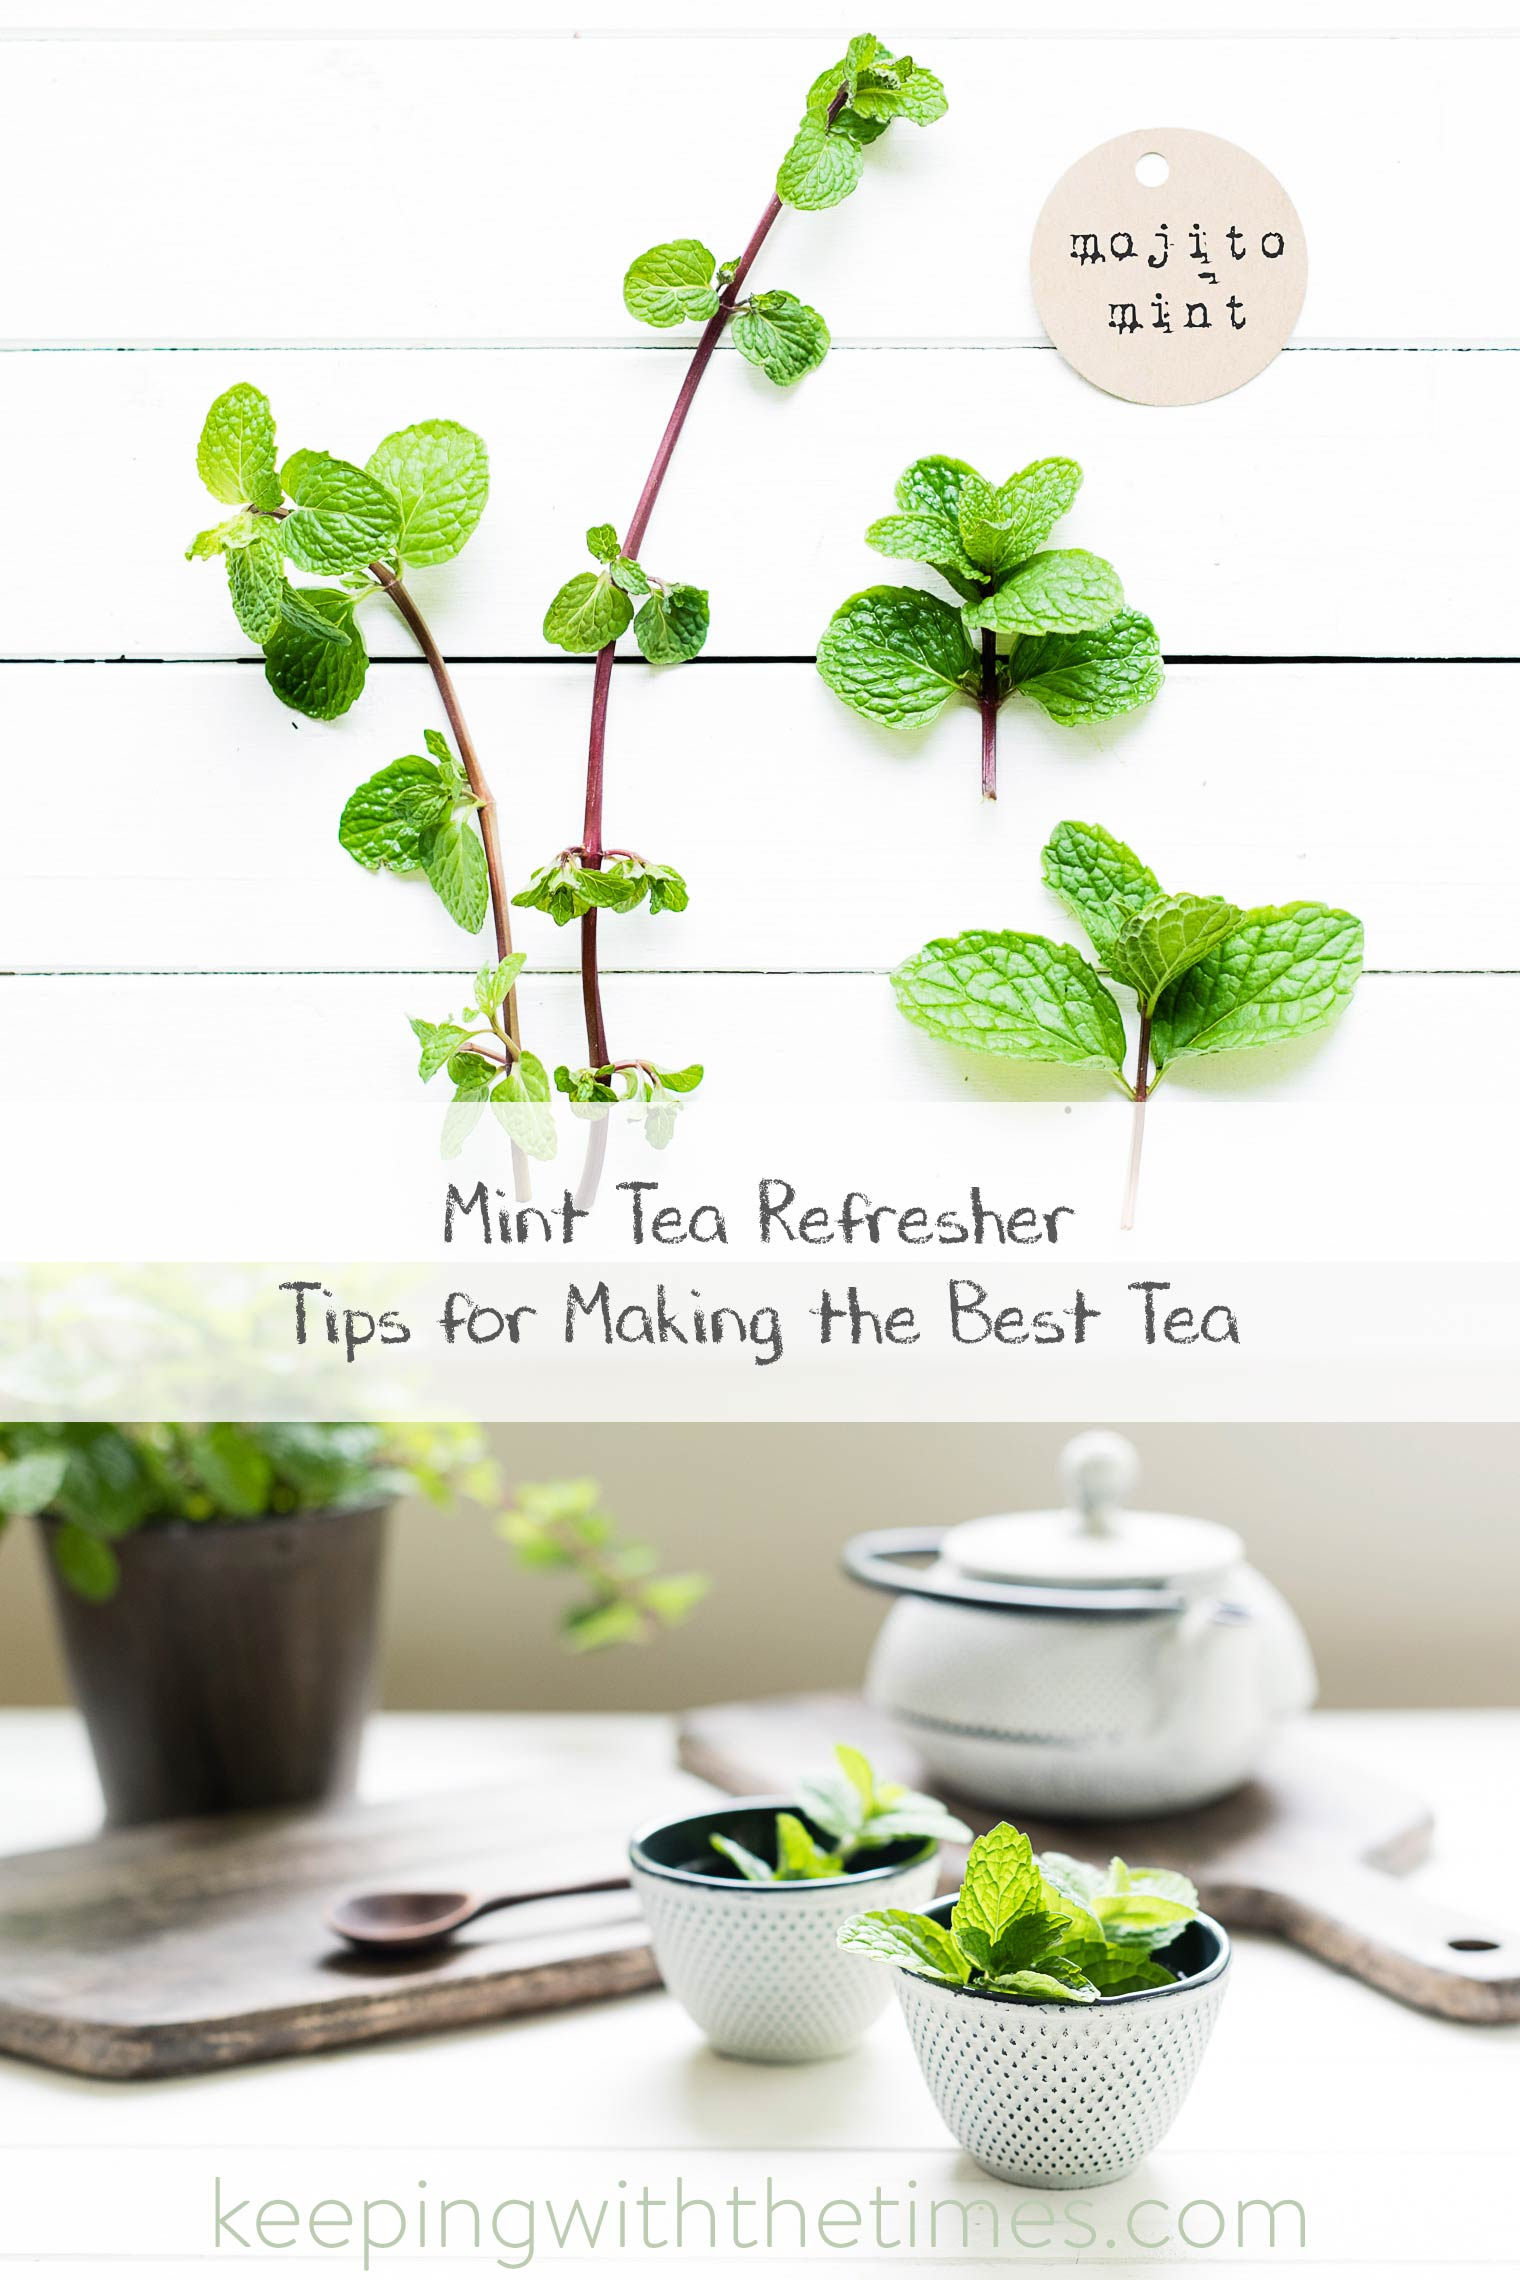 Mint tea is soothing and refreshing, and if you can use fresh mint it's especially delightful.  Growing mint is easy and satisfying as this plant is vigorous and aggressive. If you're growing mint, I would suggest you plant it in a container up off the ground or it will take over your garden!